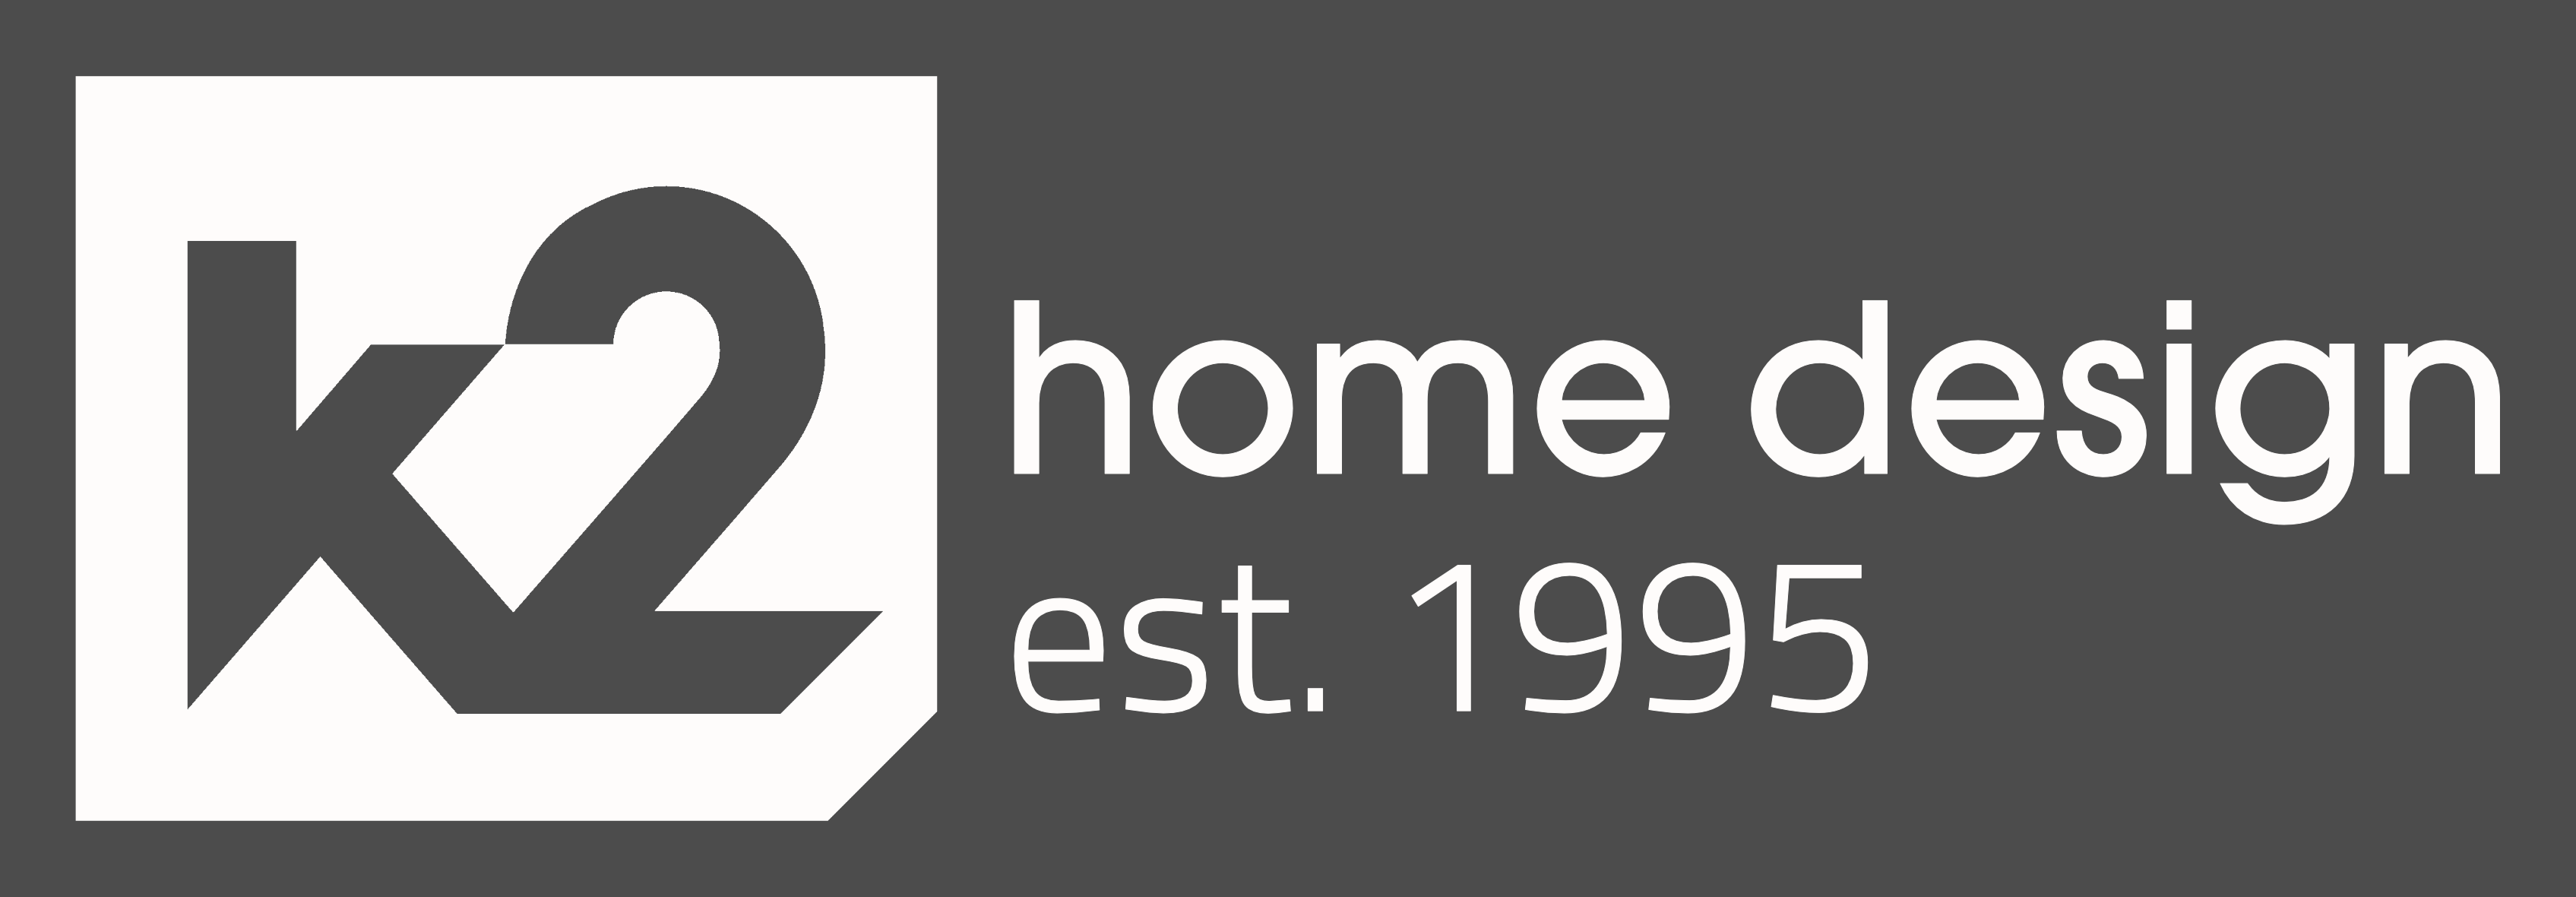 K2 home design Logo - Full